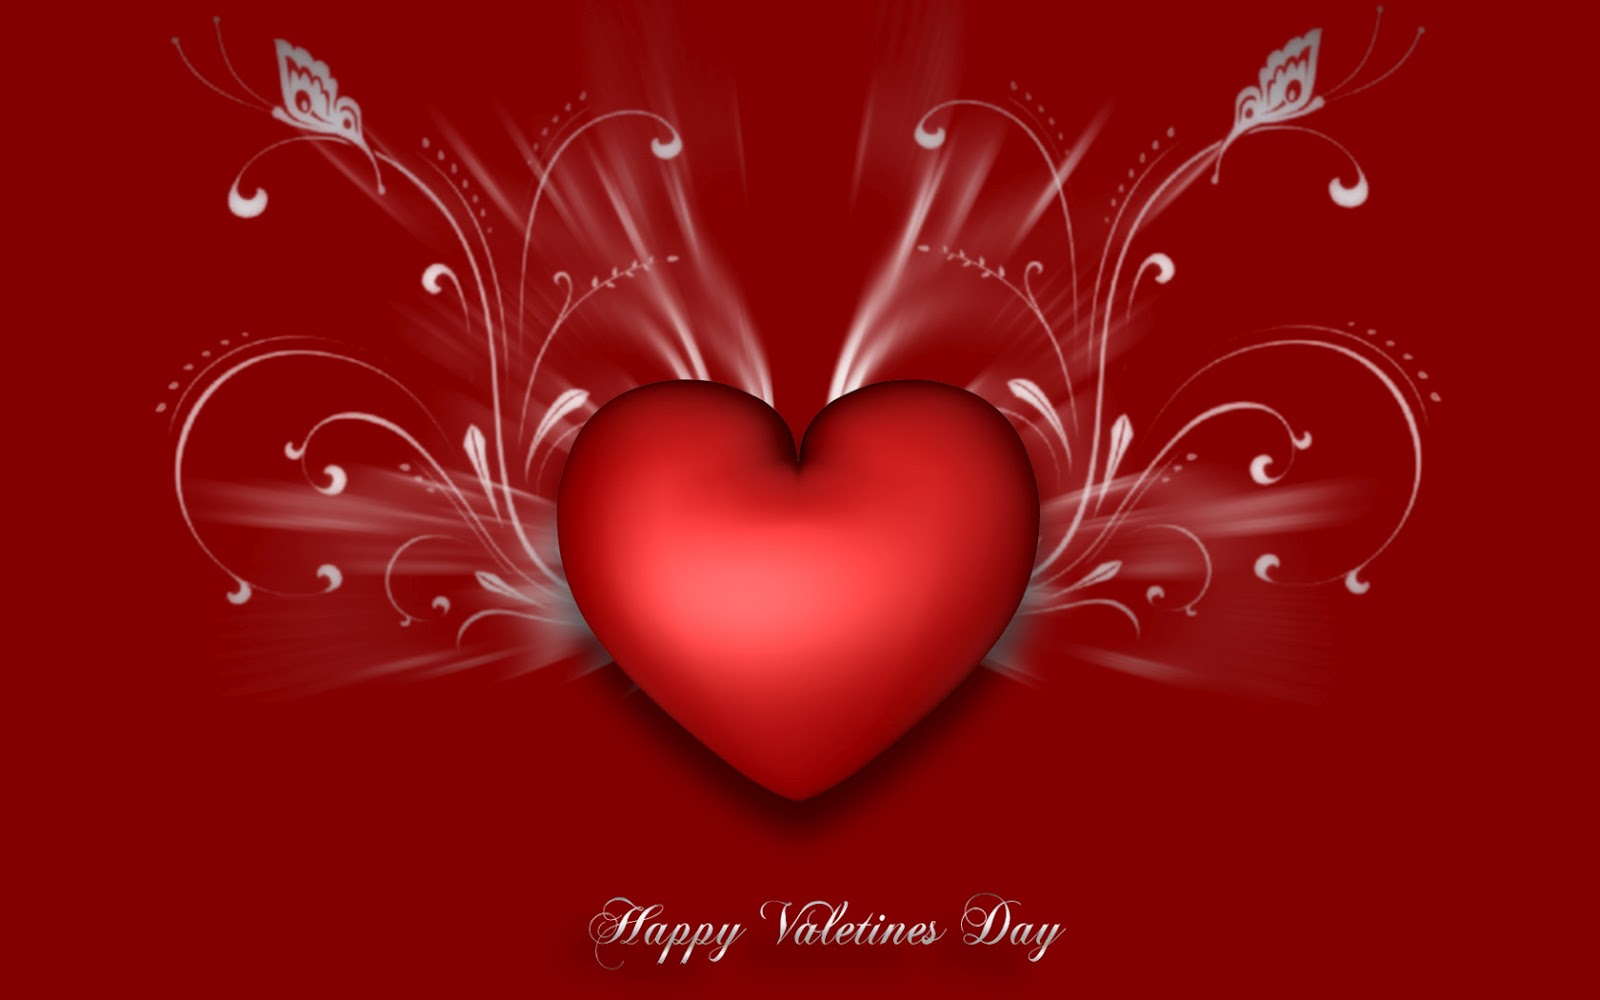 Valentines Day Images Valentines Day Wallpapers  - happy valentines day wallpapers